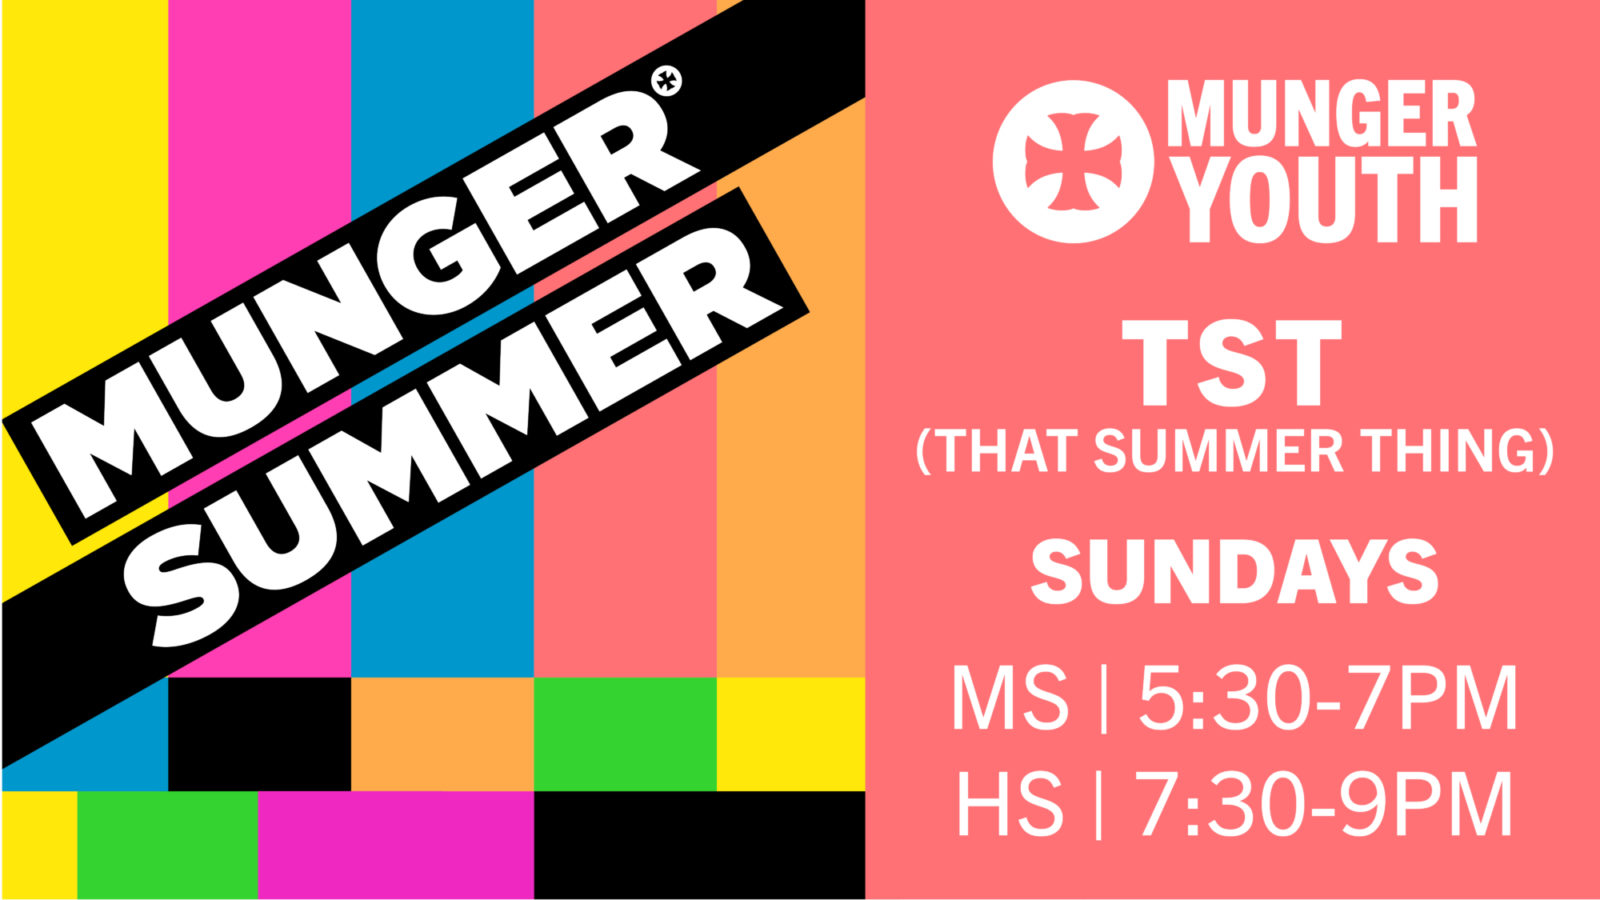 Munger Youth: TST (That Summer Thing)